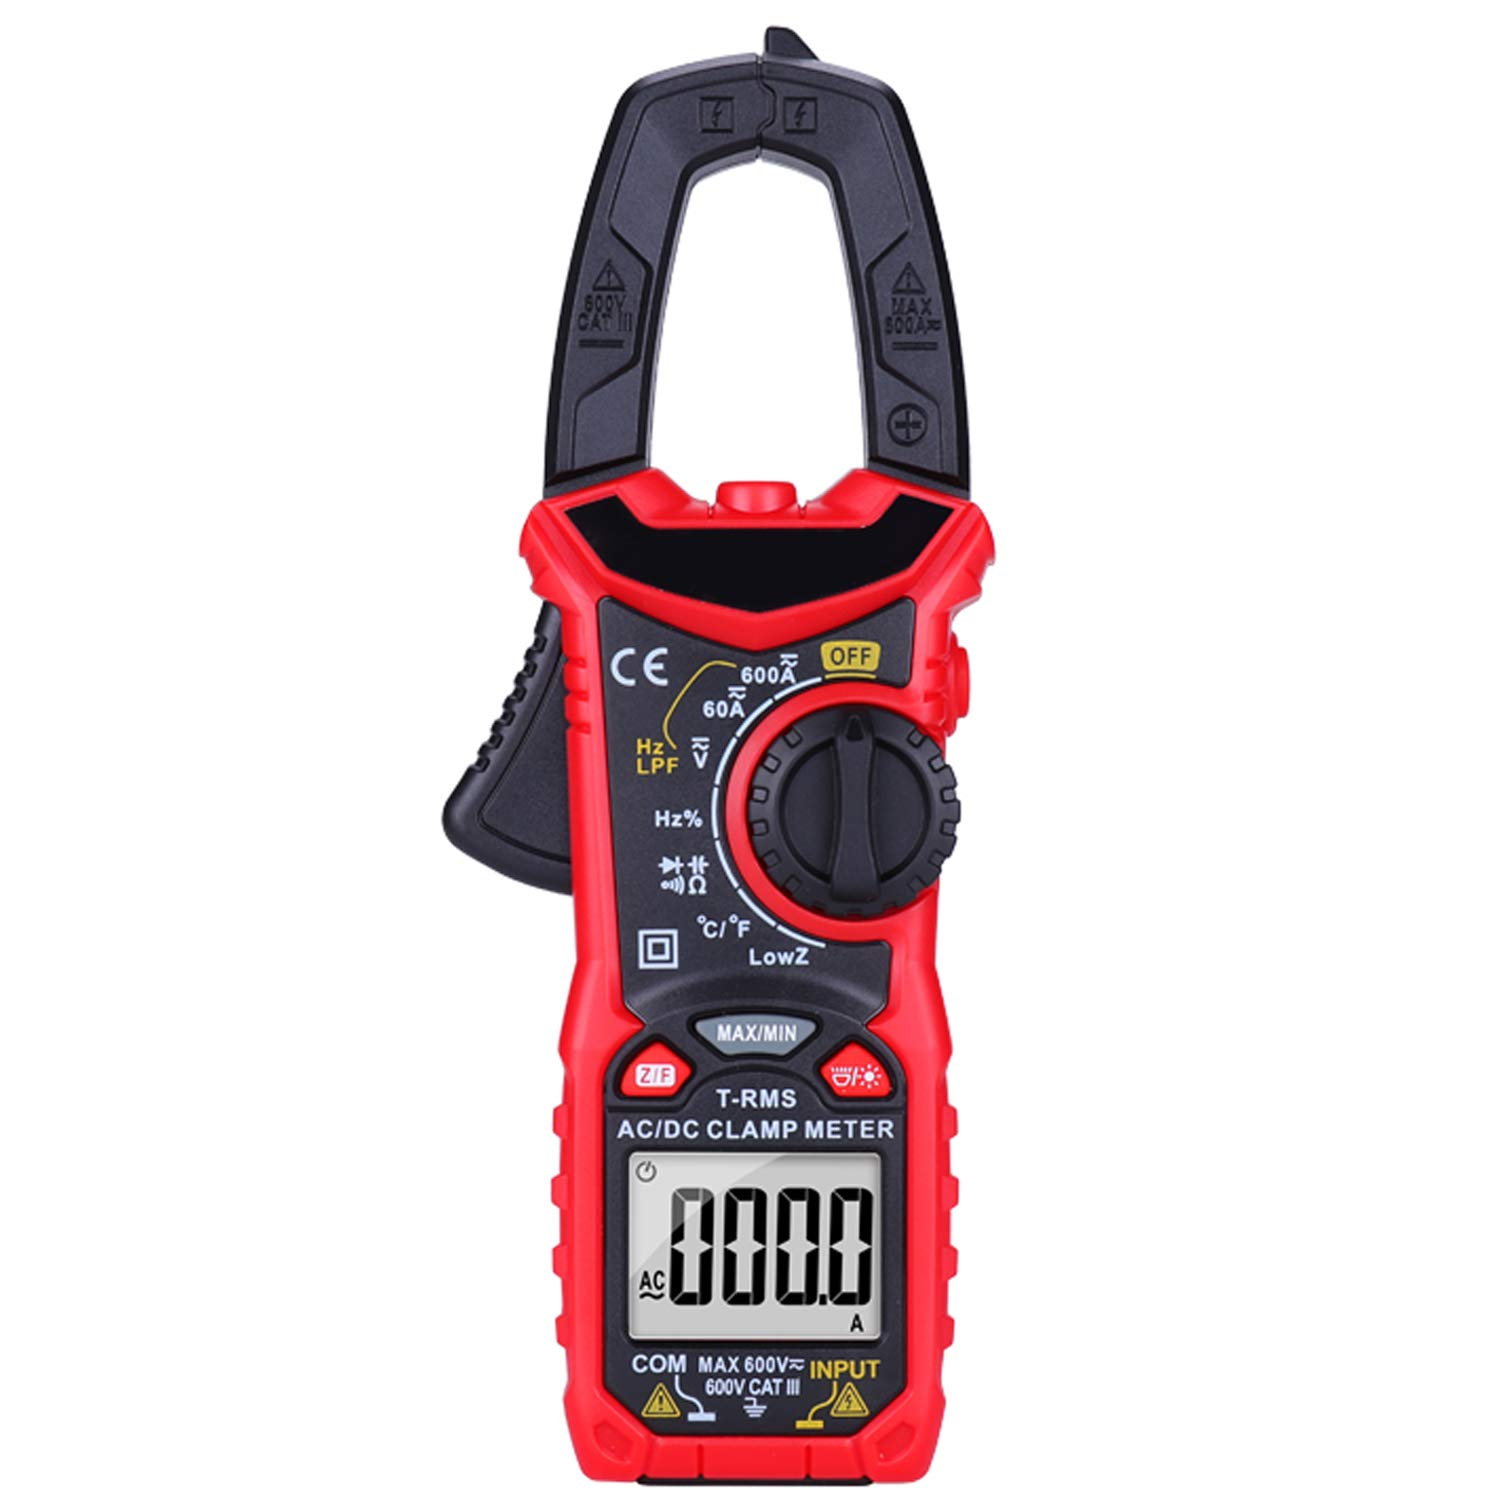 AUTENS AC/DC Digital Clamp Meter 6000 Counts True RMS Auto Range NCV AC DC Current Voltage Resistance Capacitance Frequency Diode Temperature Measure Tester, Backlight LCD Display Flashlight